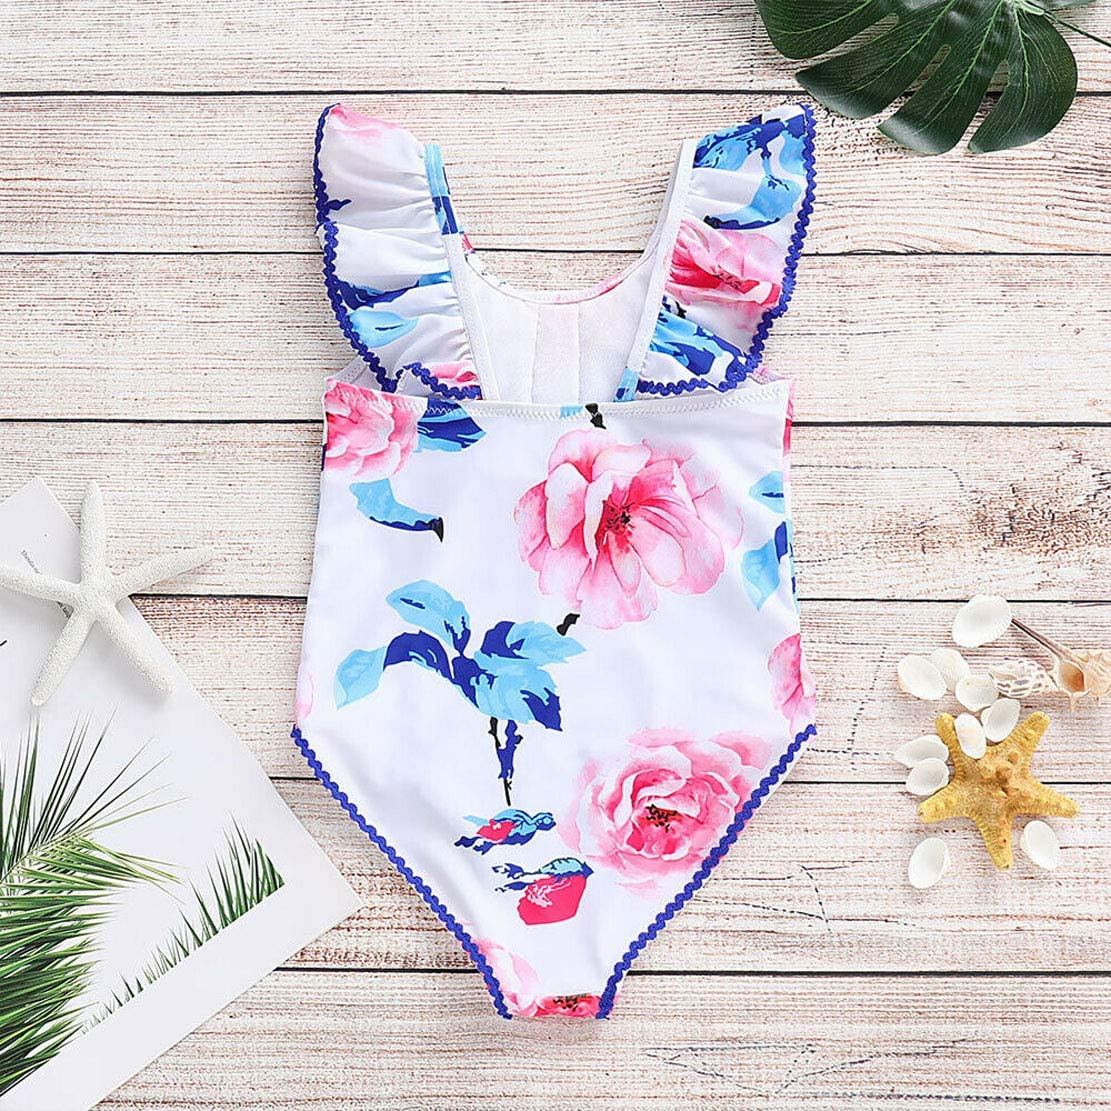 do.Cross Toddler Baby Kids Girls Cute Swimsuit Swimwear Retro Floral Print Bathing Suit